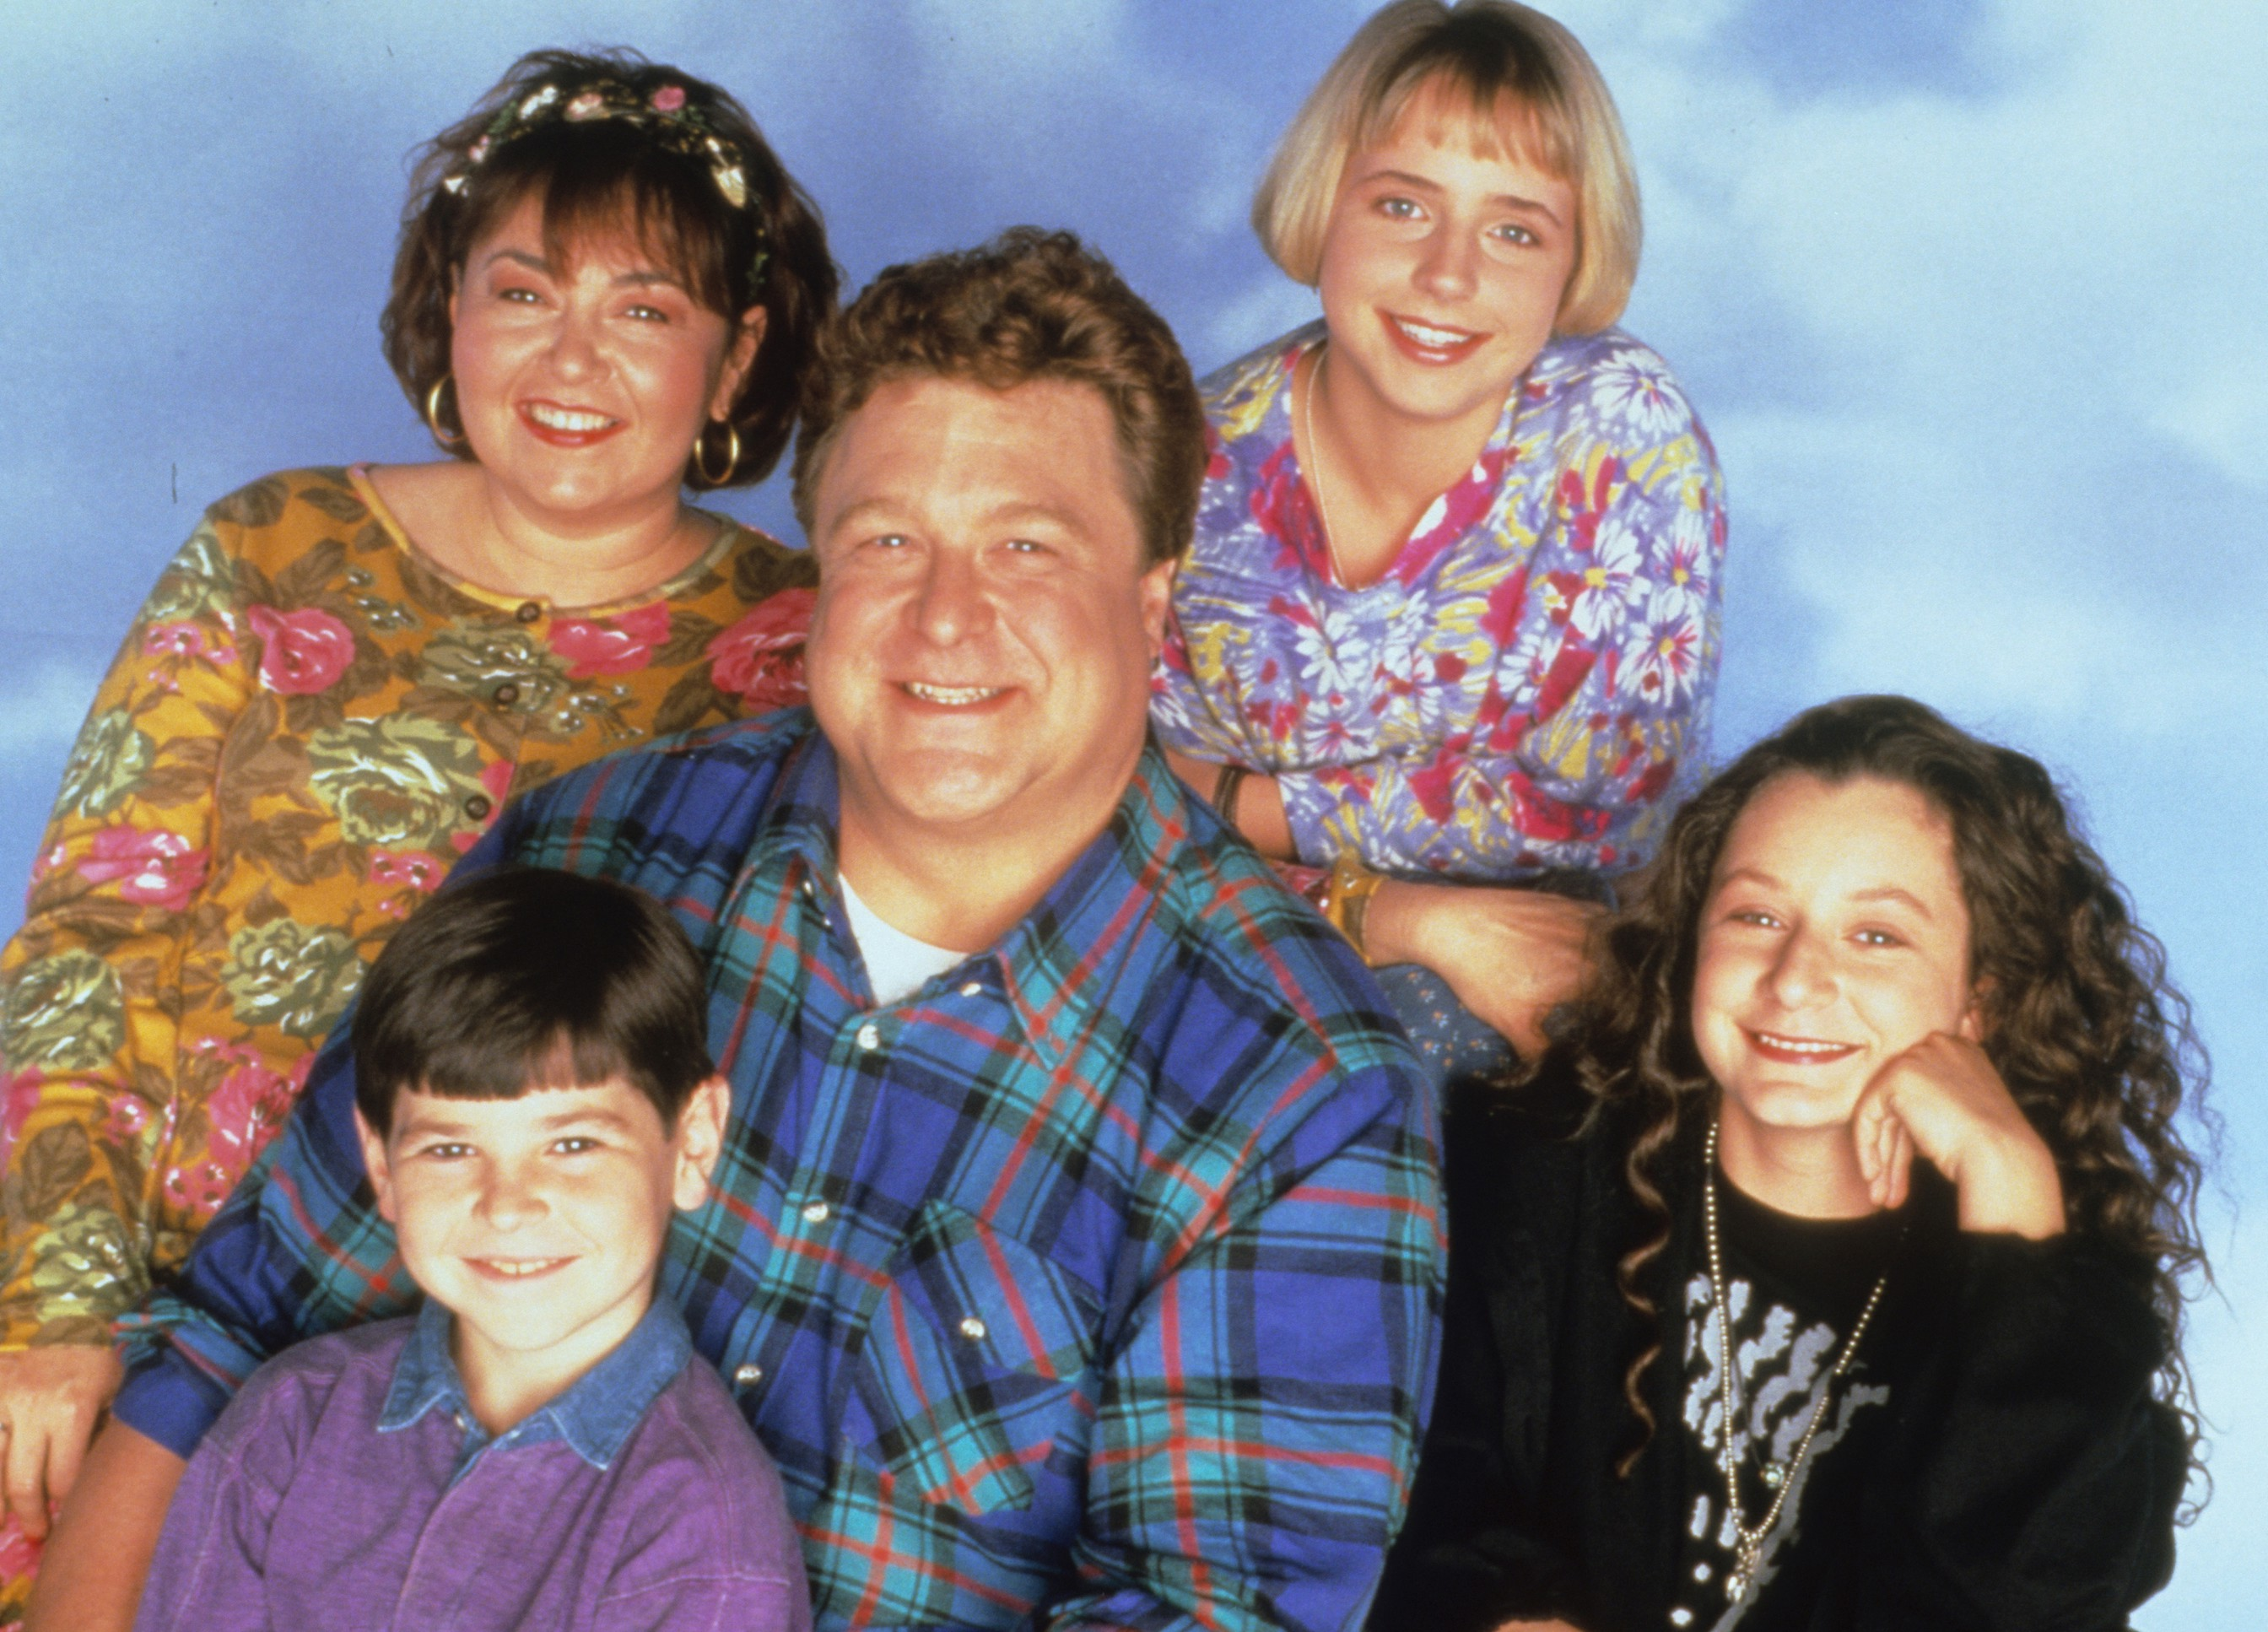 John Goodman's Dan to Appear in Roseanne Reboot, Death Be Damned